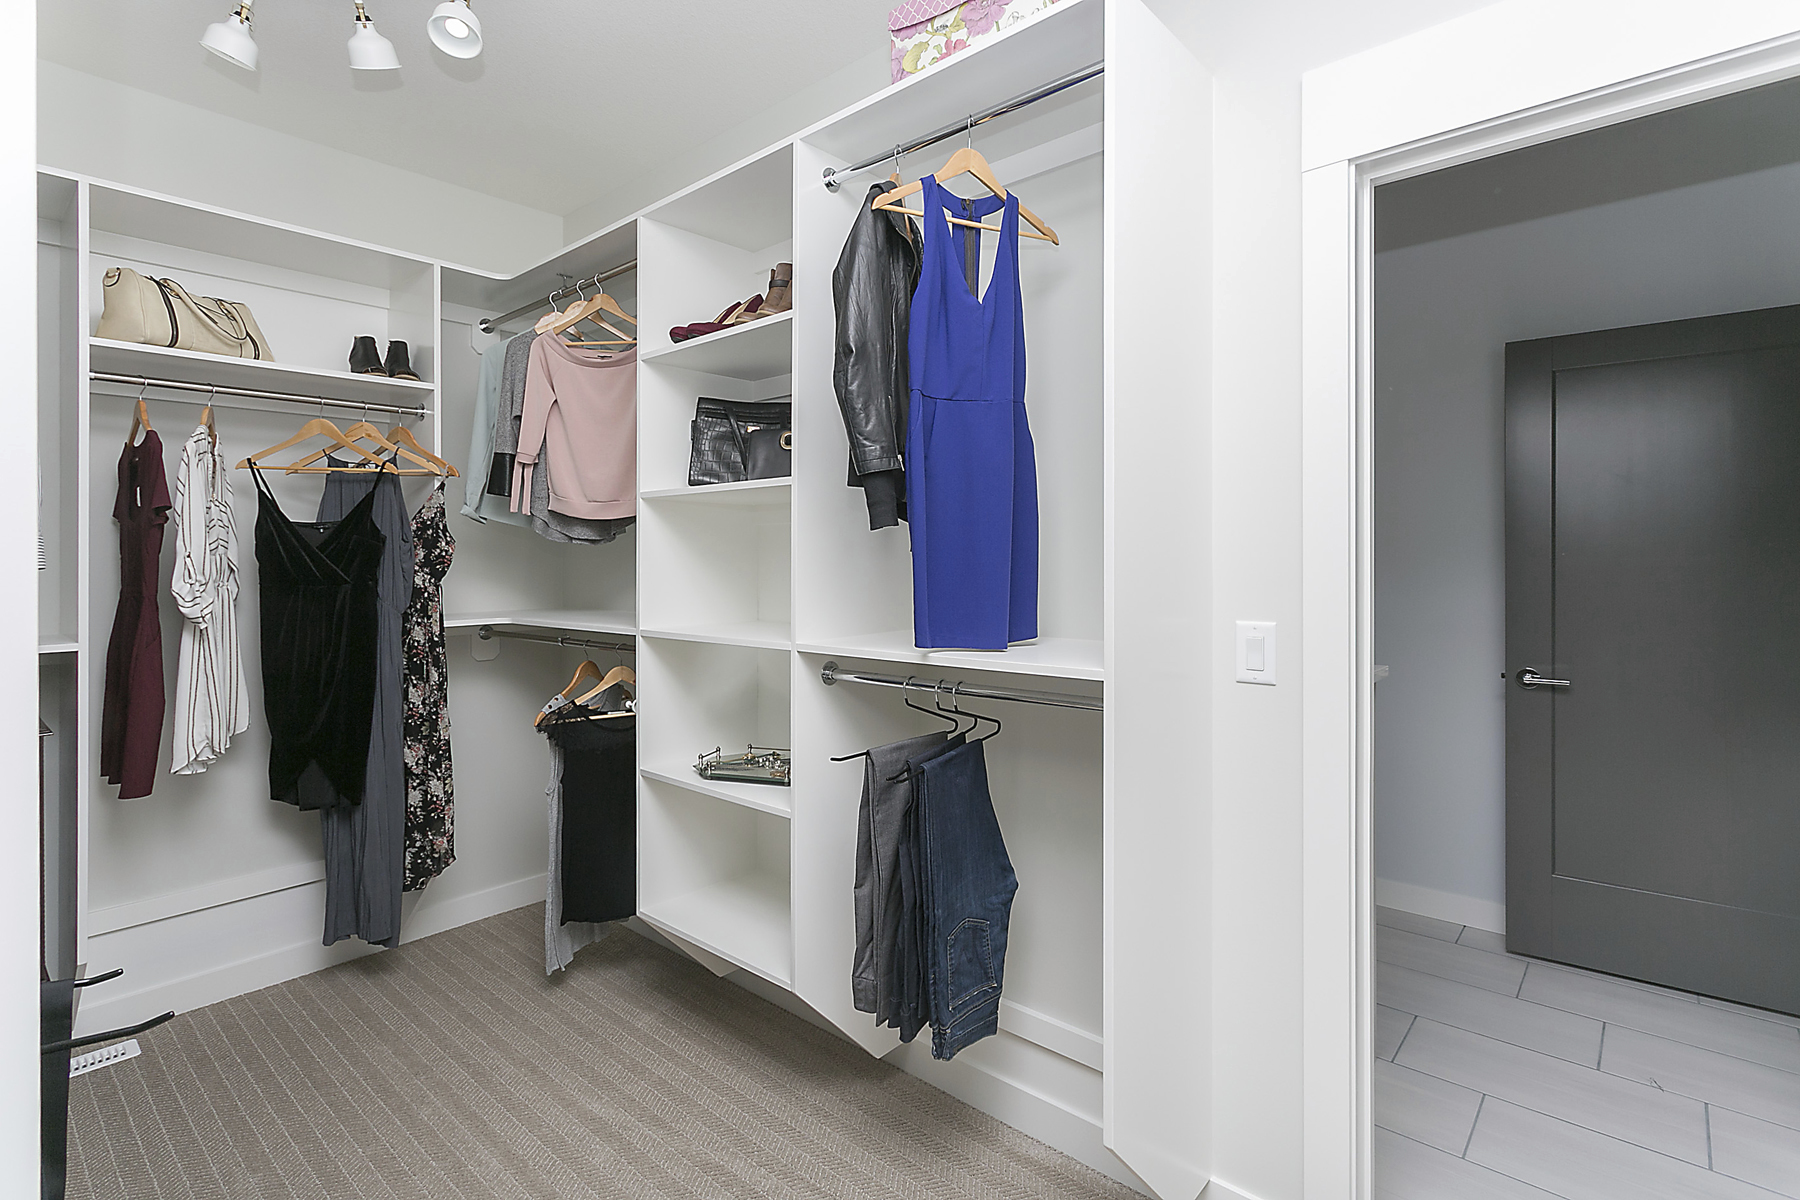 walk in closet with built in shelving units multi-level hanging rods